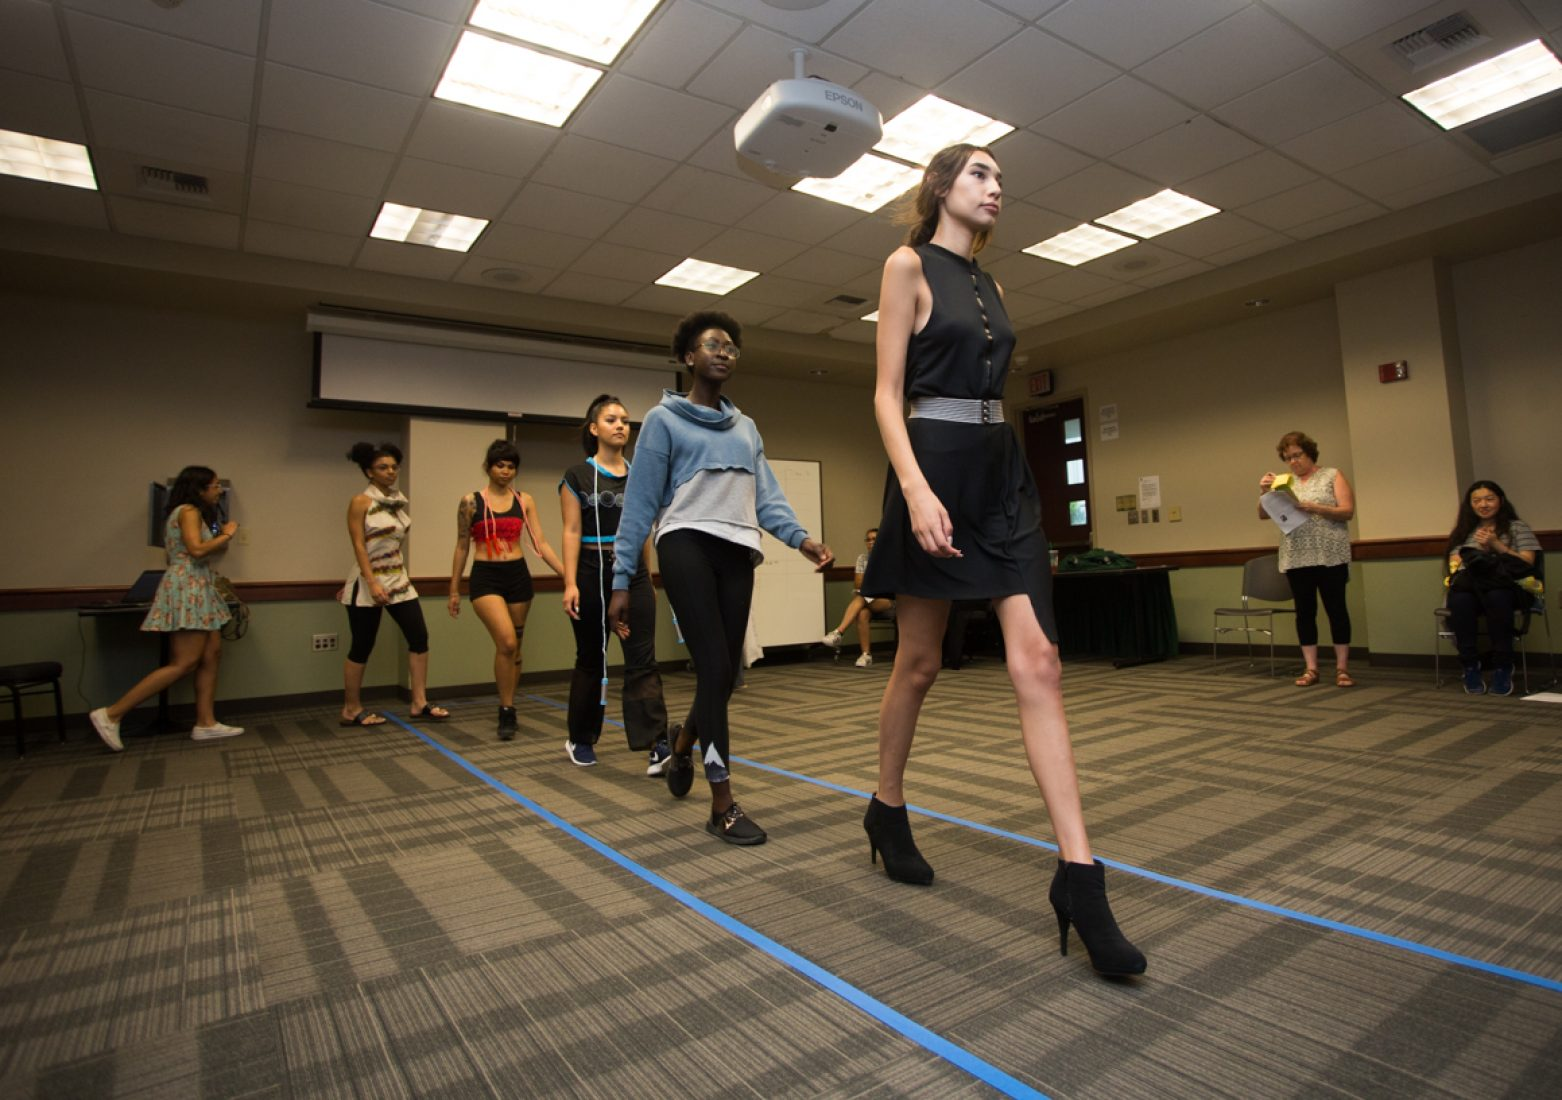 Models practice their runway walks during rehearsal in the University Union Foothill Suite on Wednesday. (Photo by Nicole Fowler)